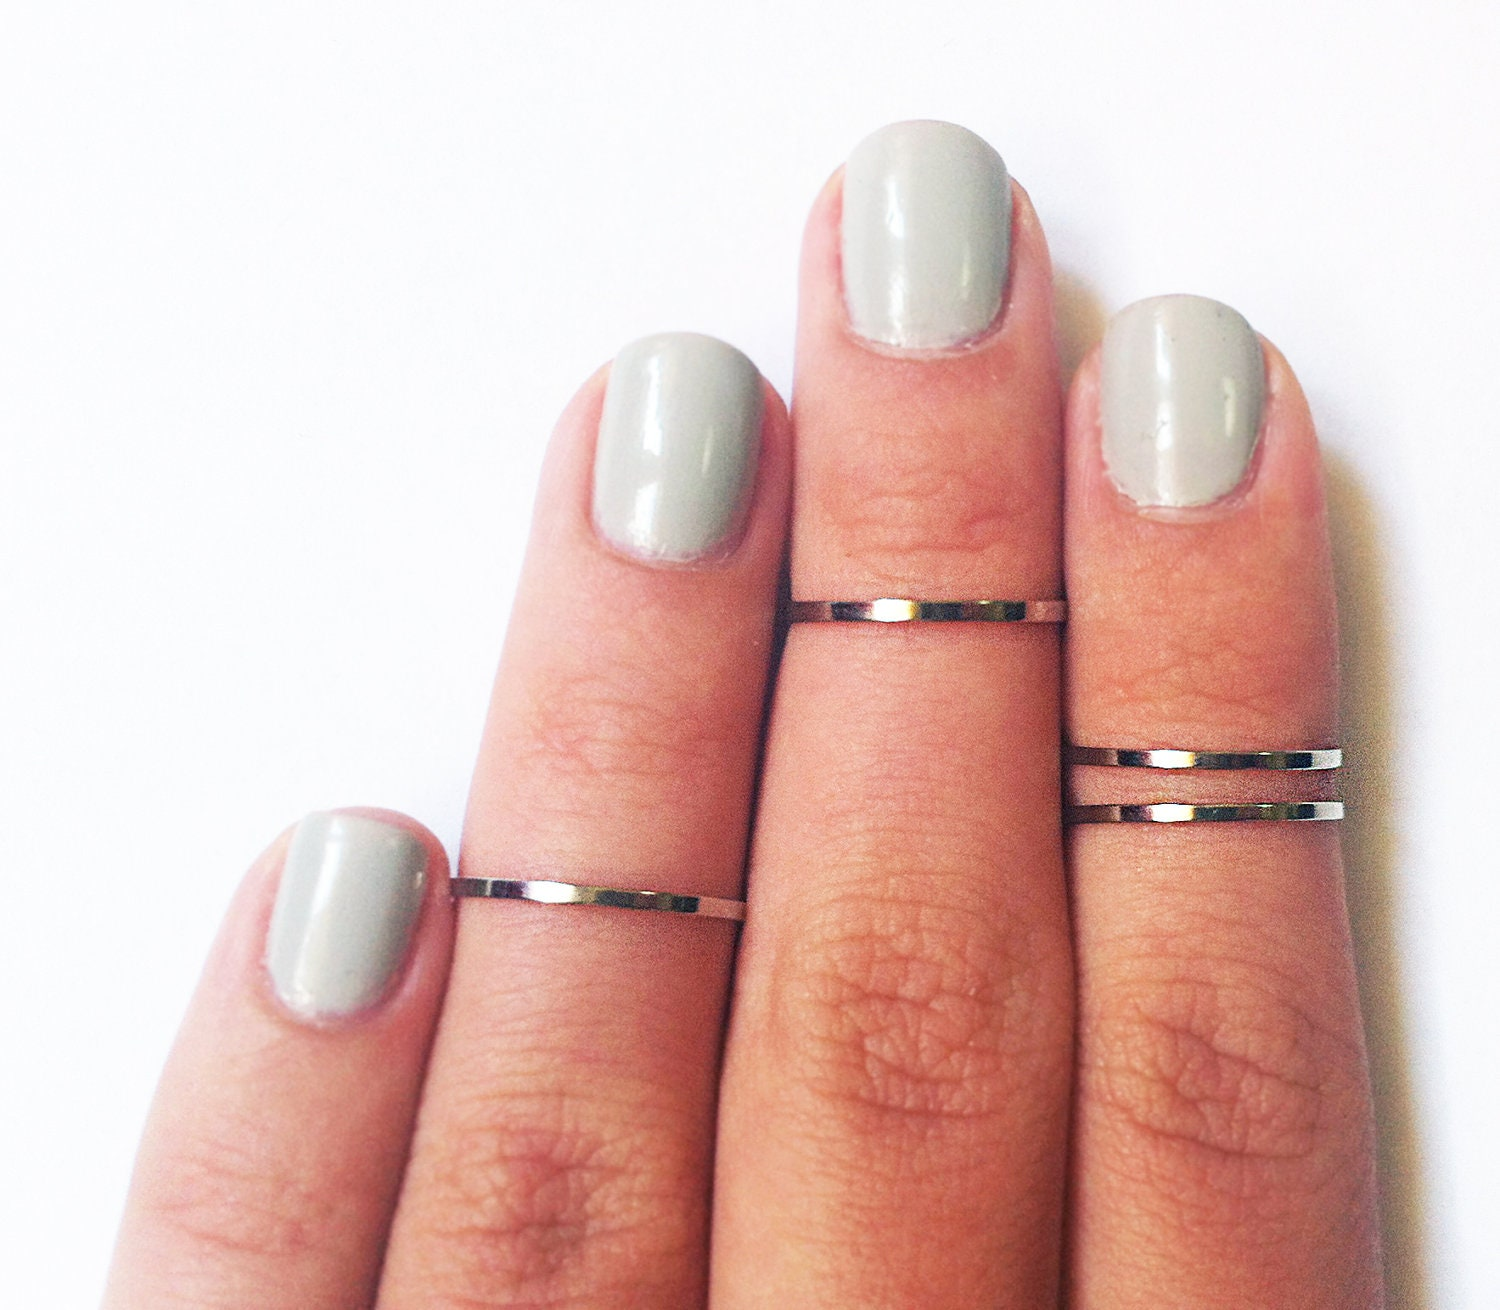 cuff knuckle ring set / shiny finish / tube ring set of above the knuckle ring, midi cuff ring, Wide band ring, wide cuff ring by AshkalJewelry Find this Pin and more on Accessories by Malikah A. Set of 2 tube rings/ cuff rings / above the knuckle ring set A perfect balance between minimalist & statement jewelry.